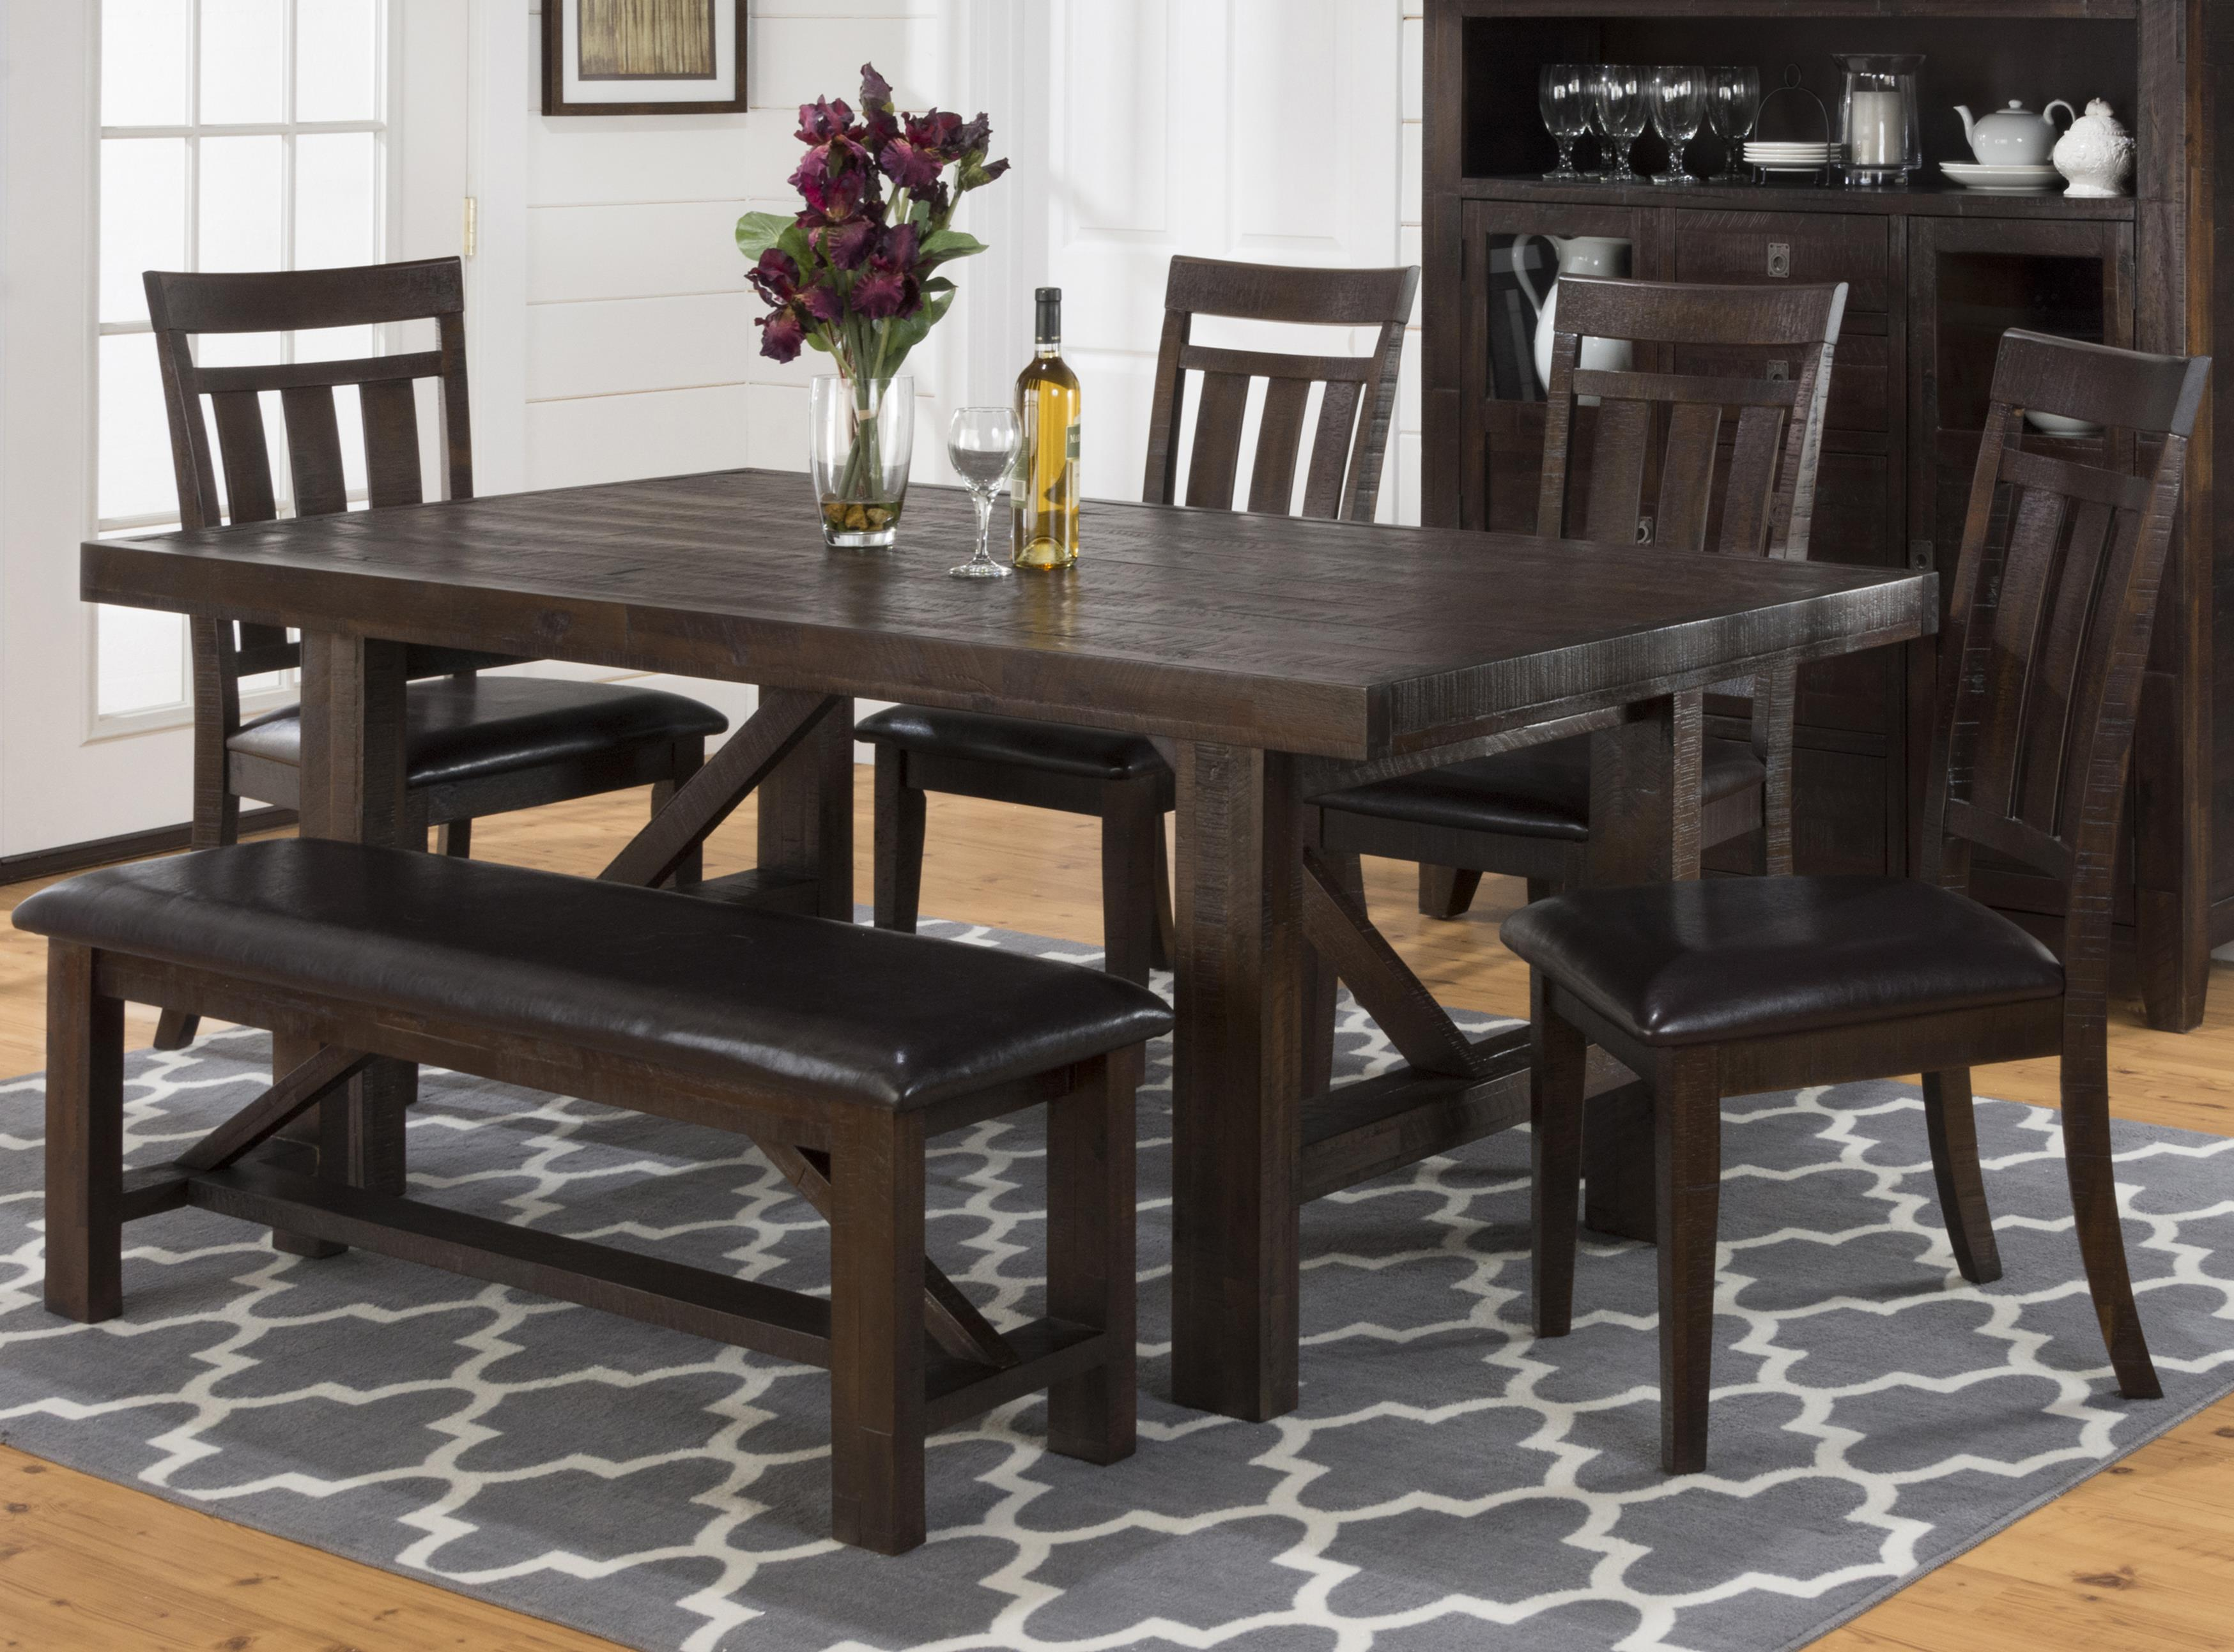 jofran kona grove dining table chair and bench set